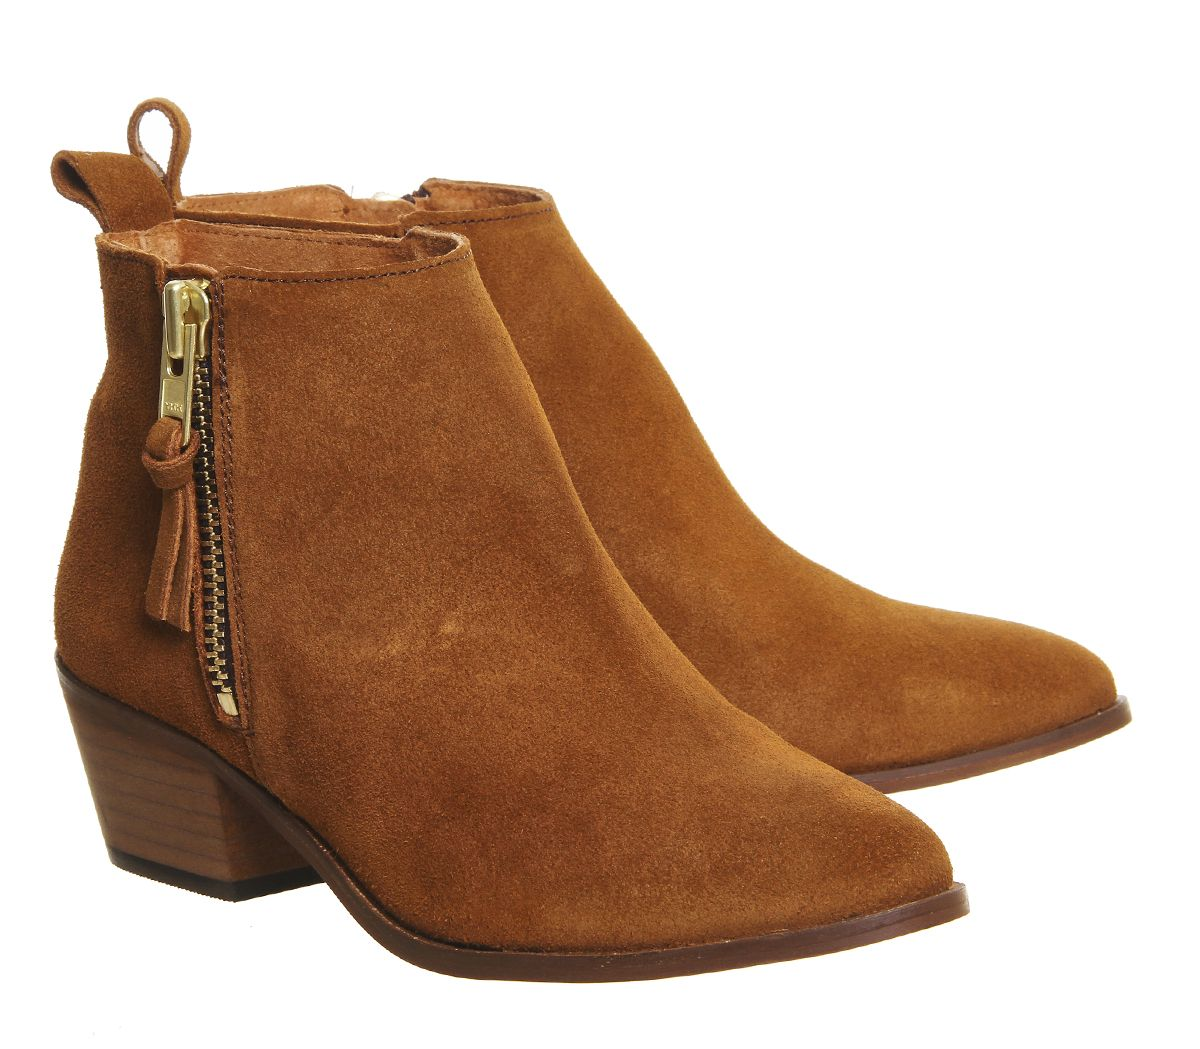 Boots Suede Ankle